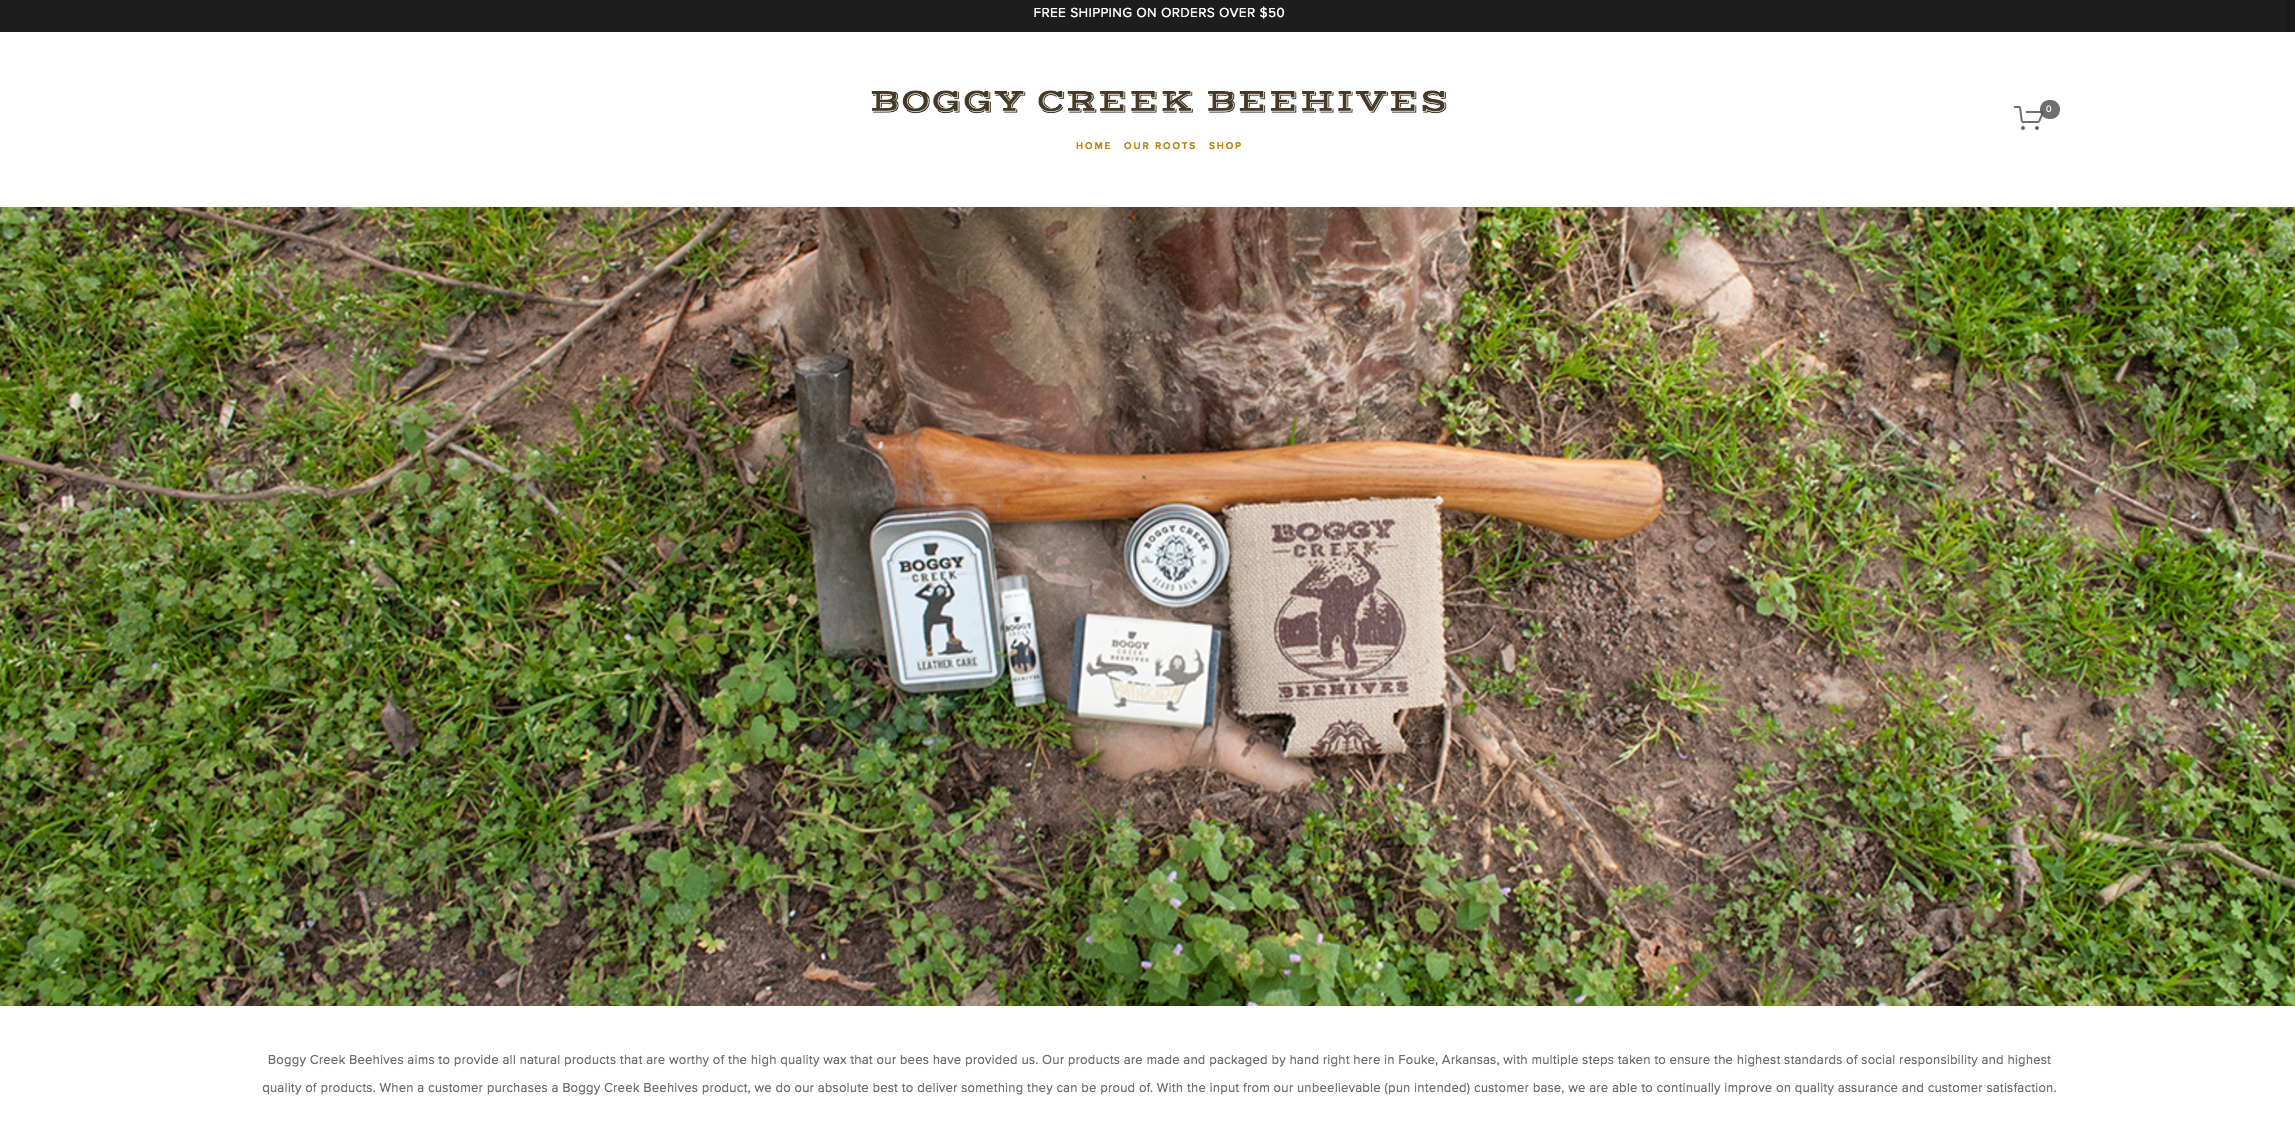 screenshot-www.boggycreekbeehives.com-2017-07-21-08-23-01.png